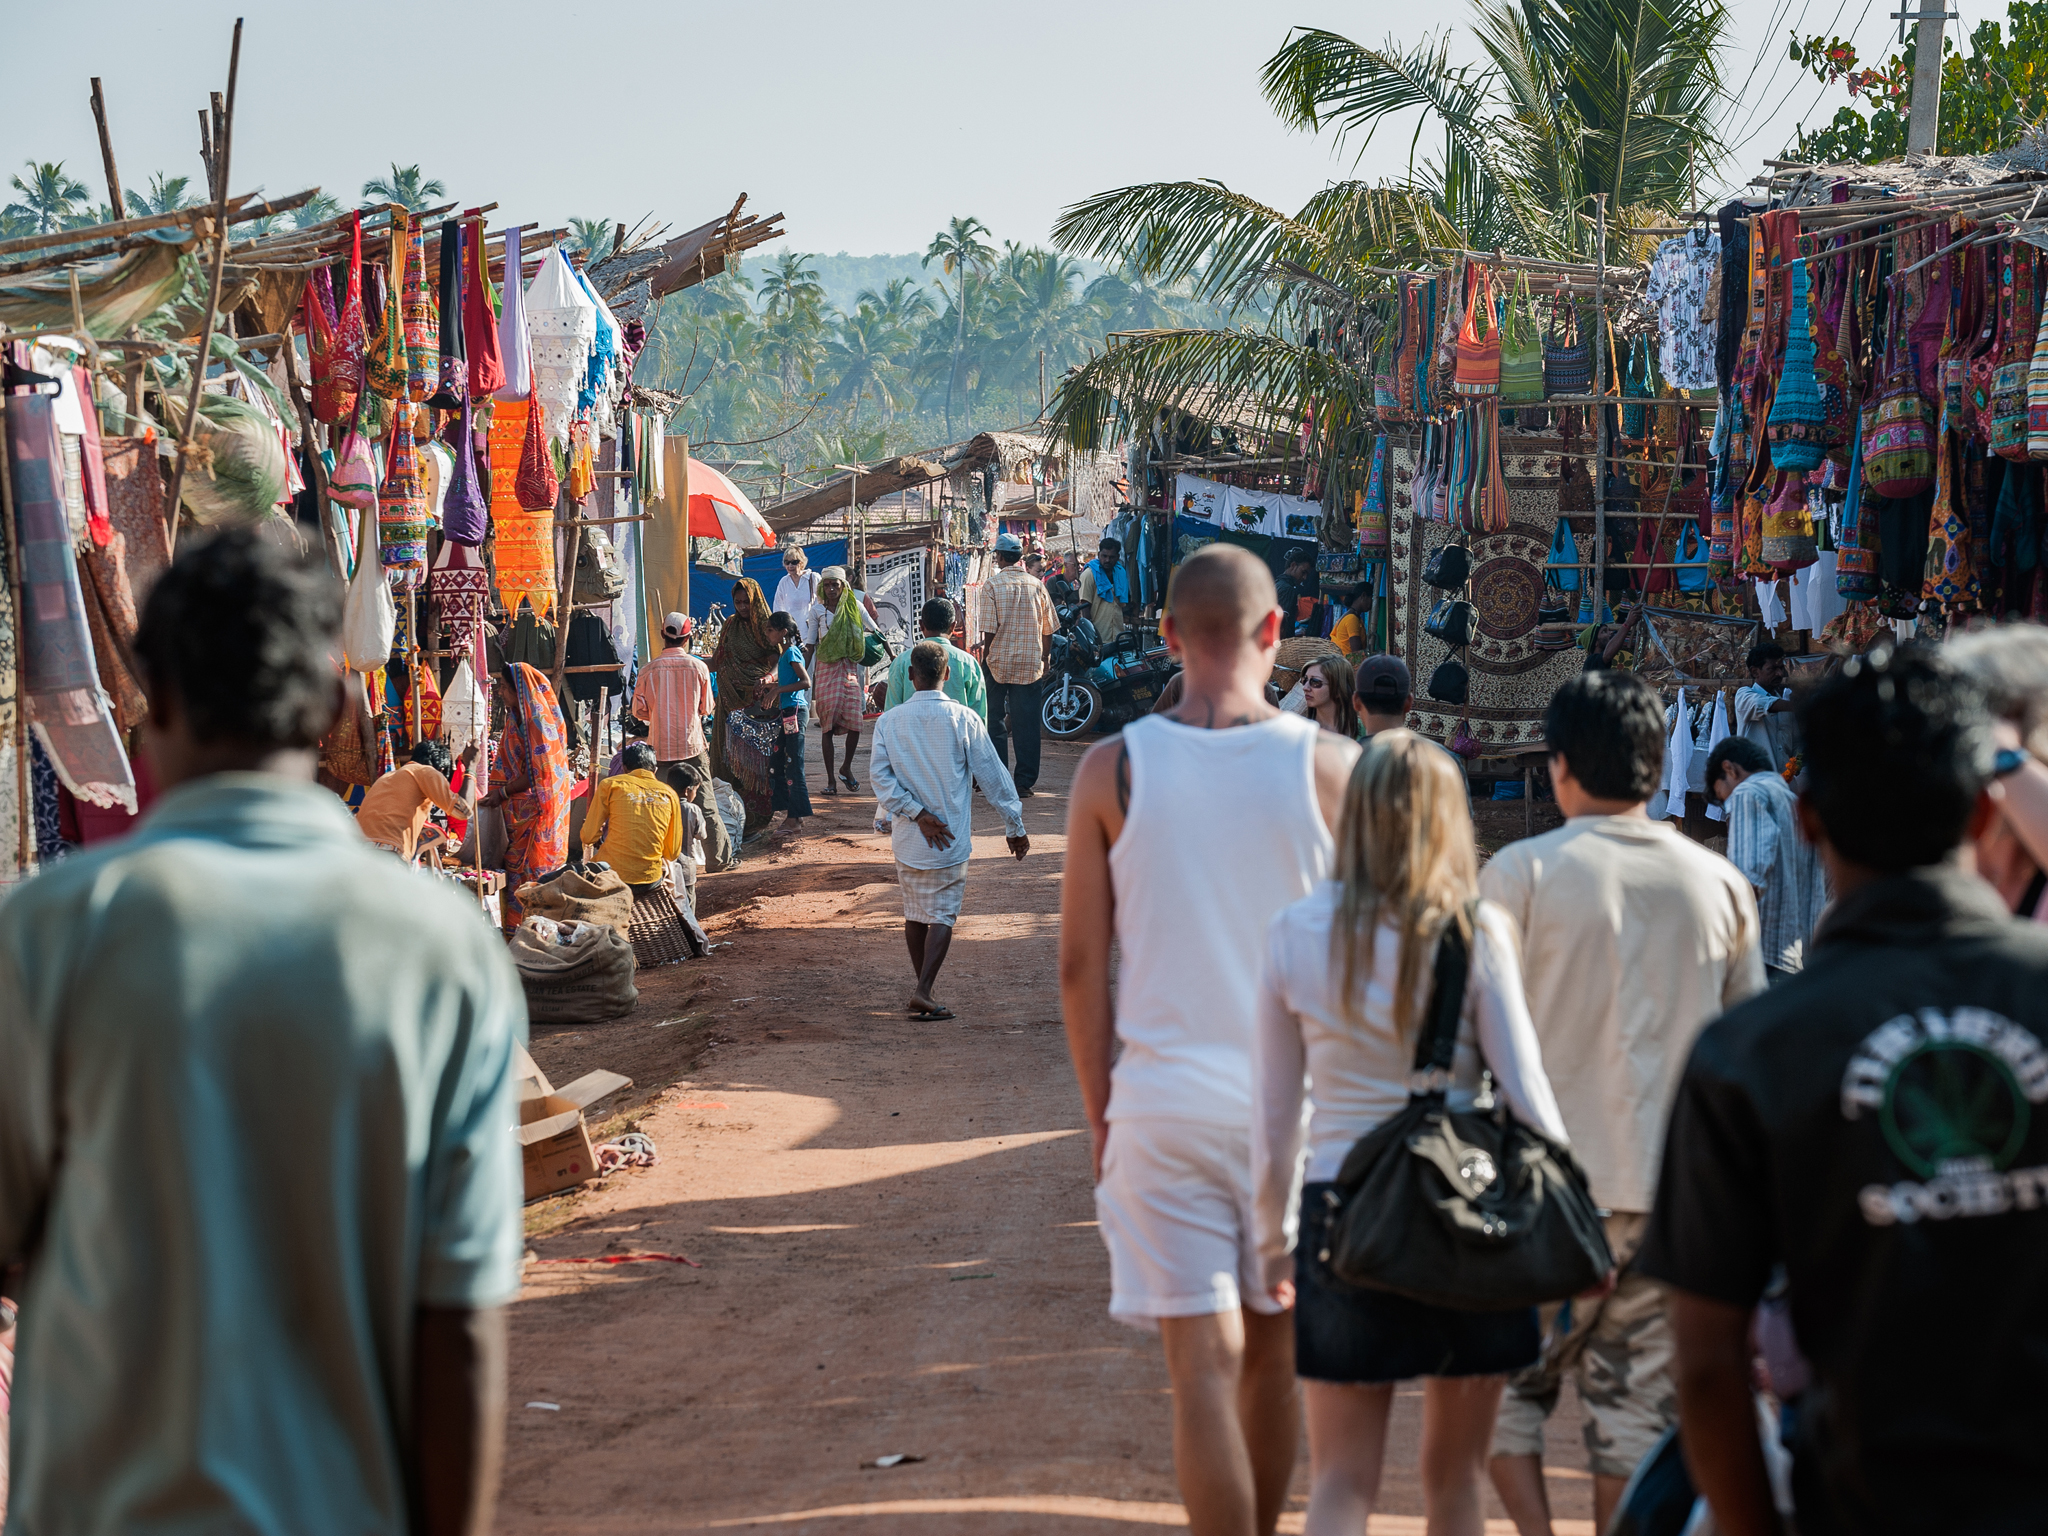 Anjuna Flea Market, things to do in Goa, India